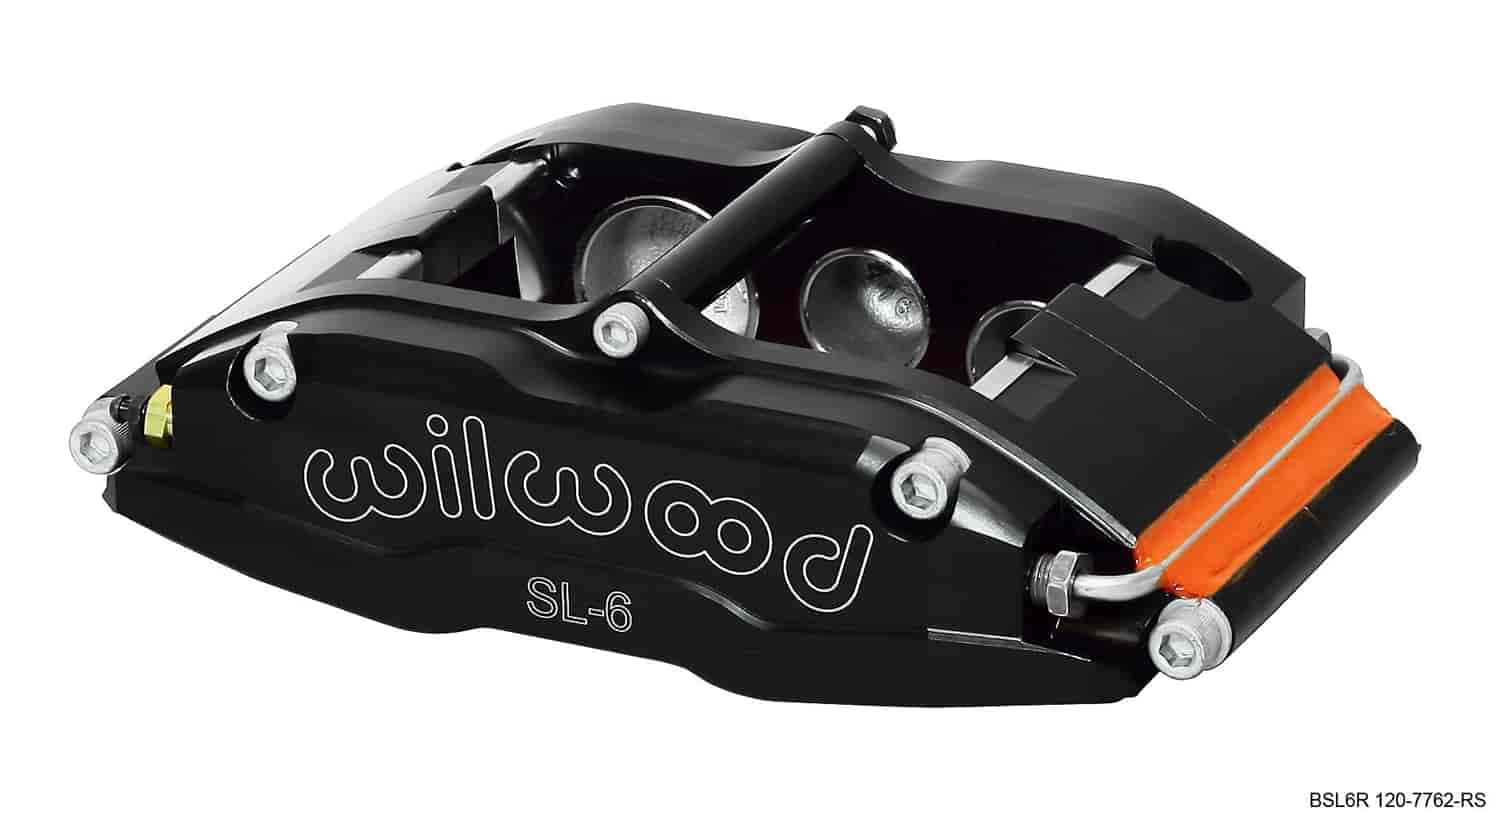 Wilwood 120-7762-RS - Wilwood SL6R 6 Piston Radial Mount Billet Aluminum Brake Caliper